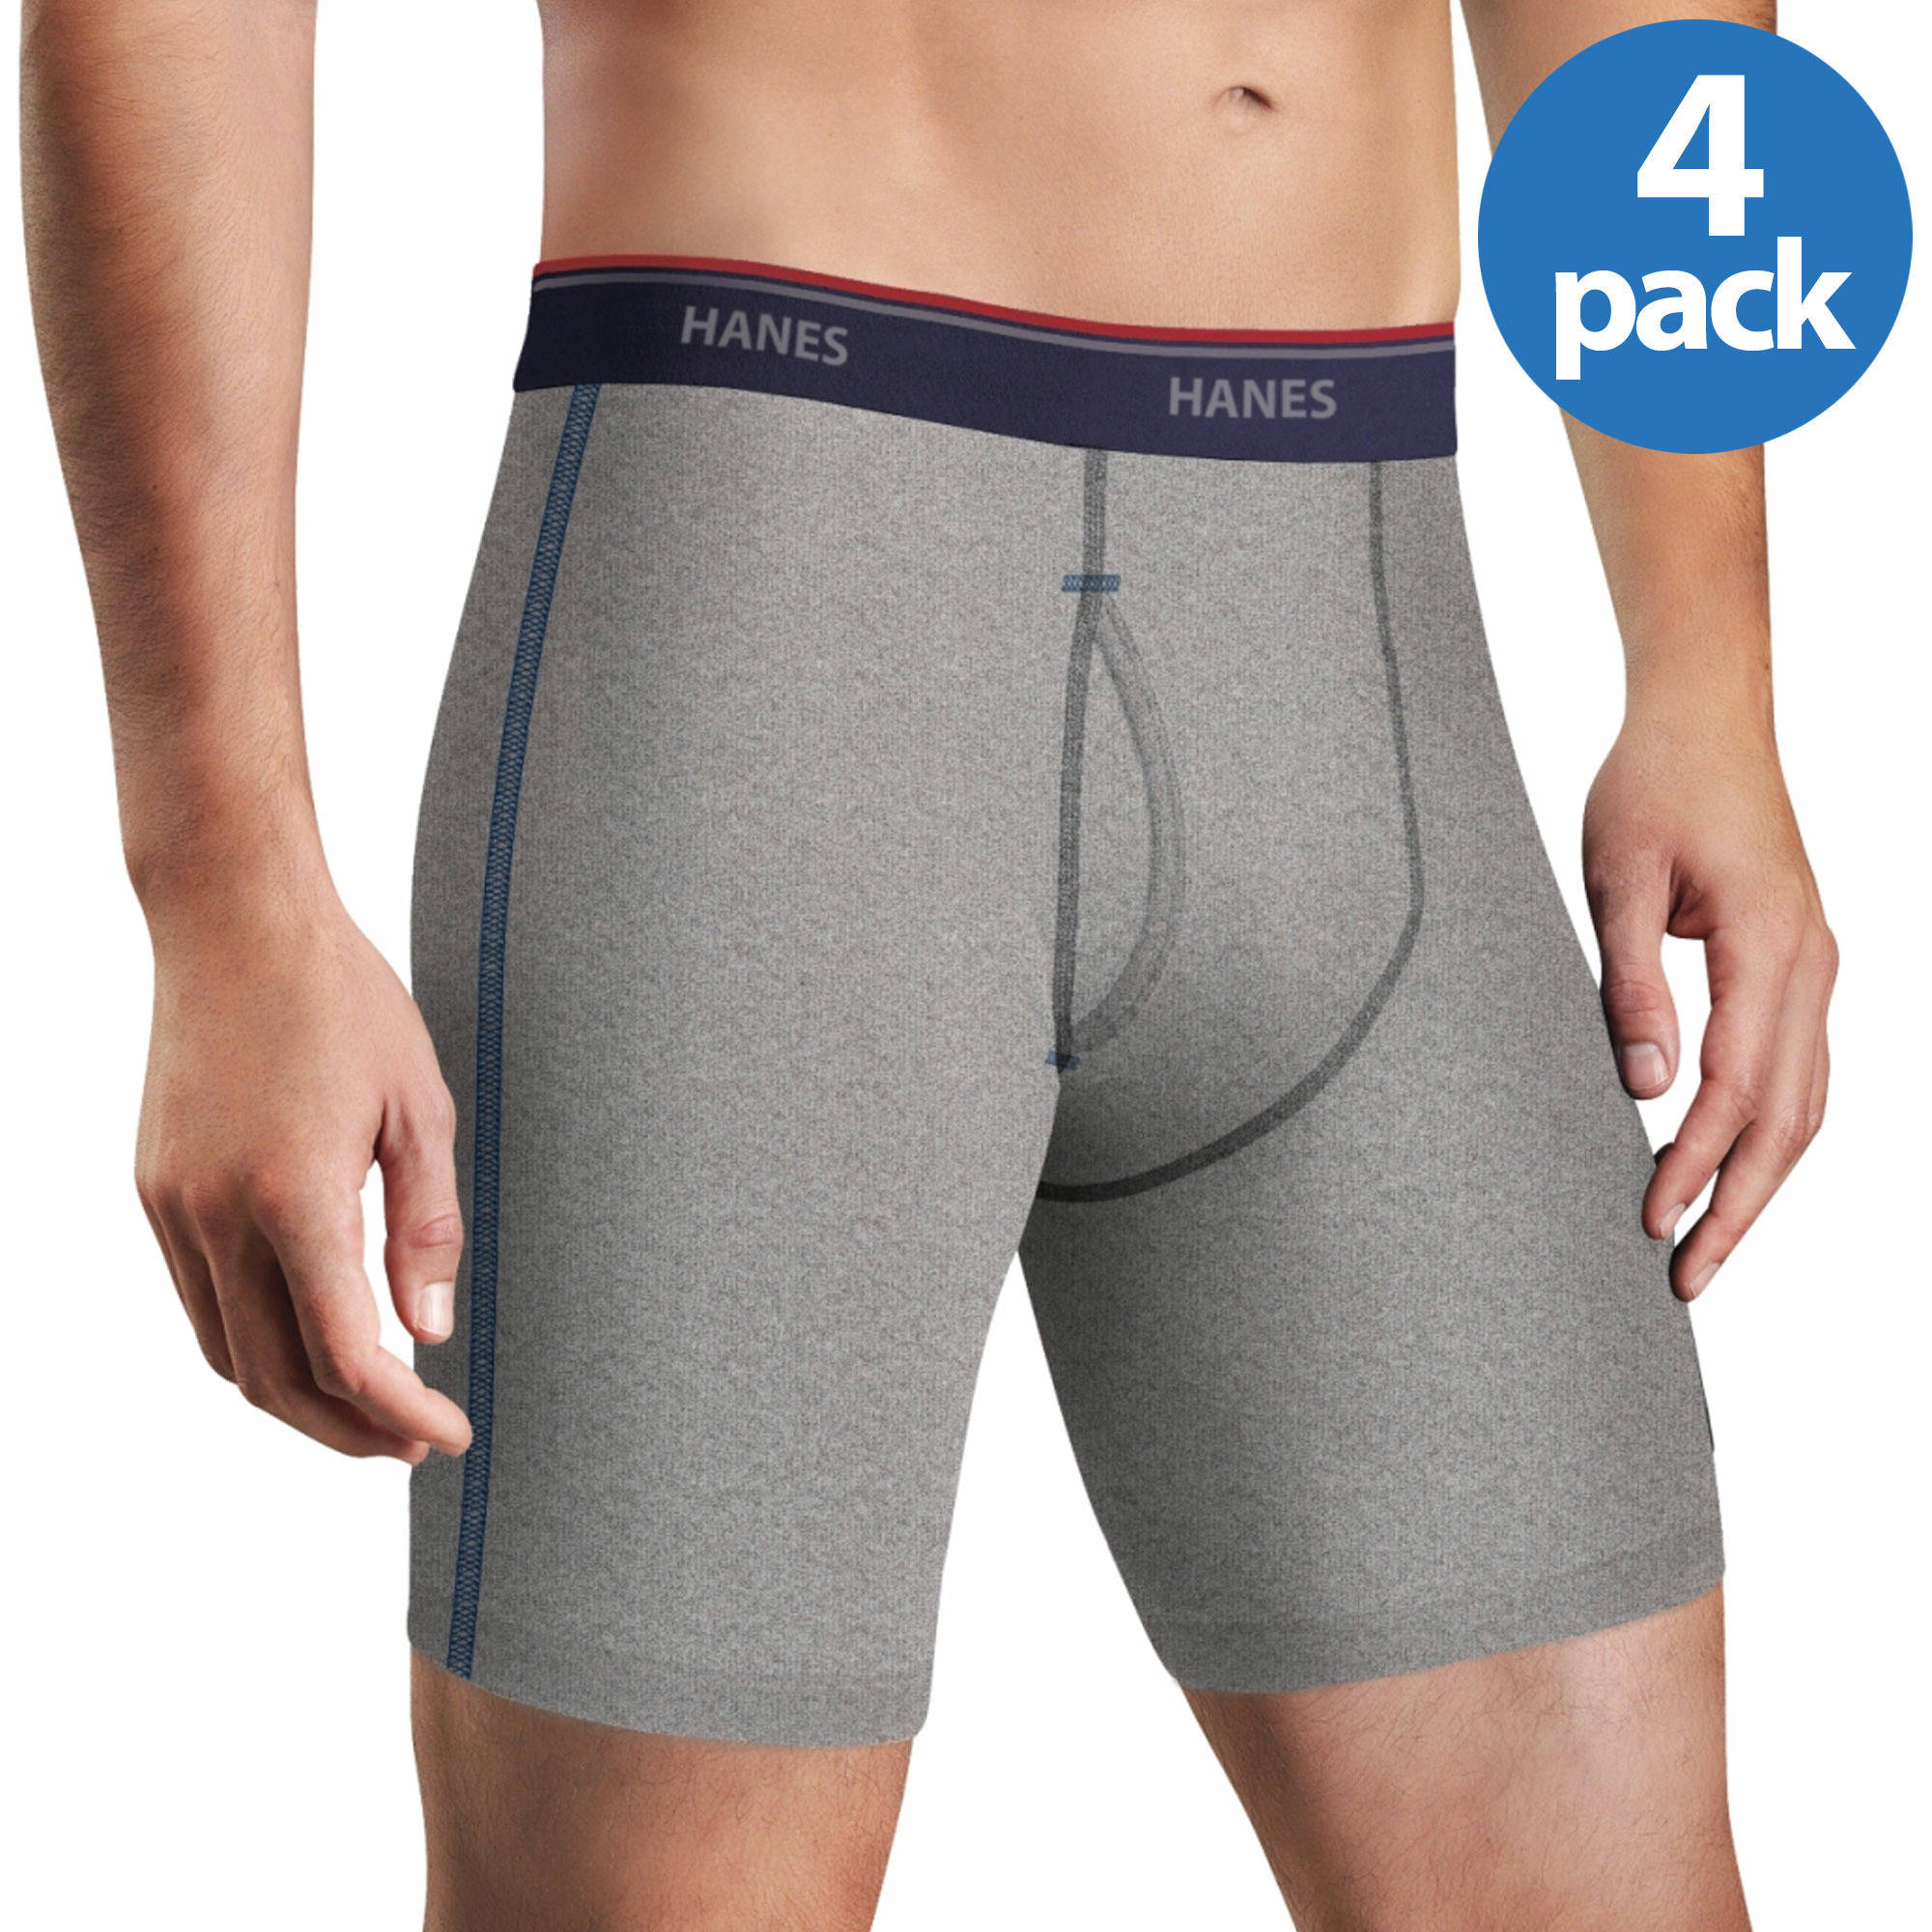 Hanes Big Men's FreshIQ Comfort Flex Waistband Long Leg Boxer Brief 4-Pack, size 2XL by Hanes Red Label Underwear